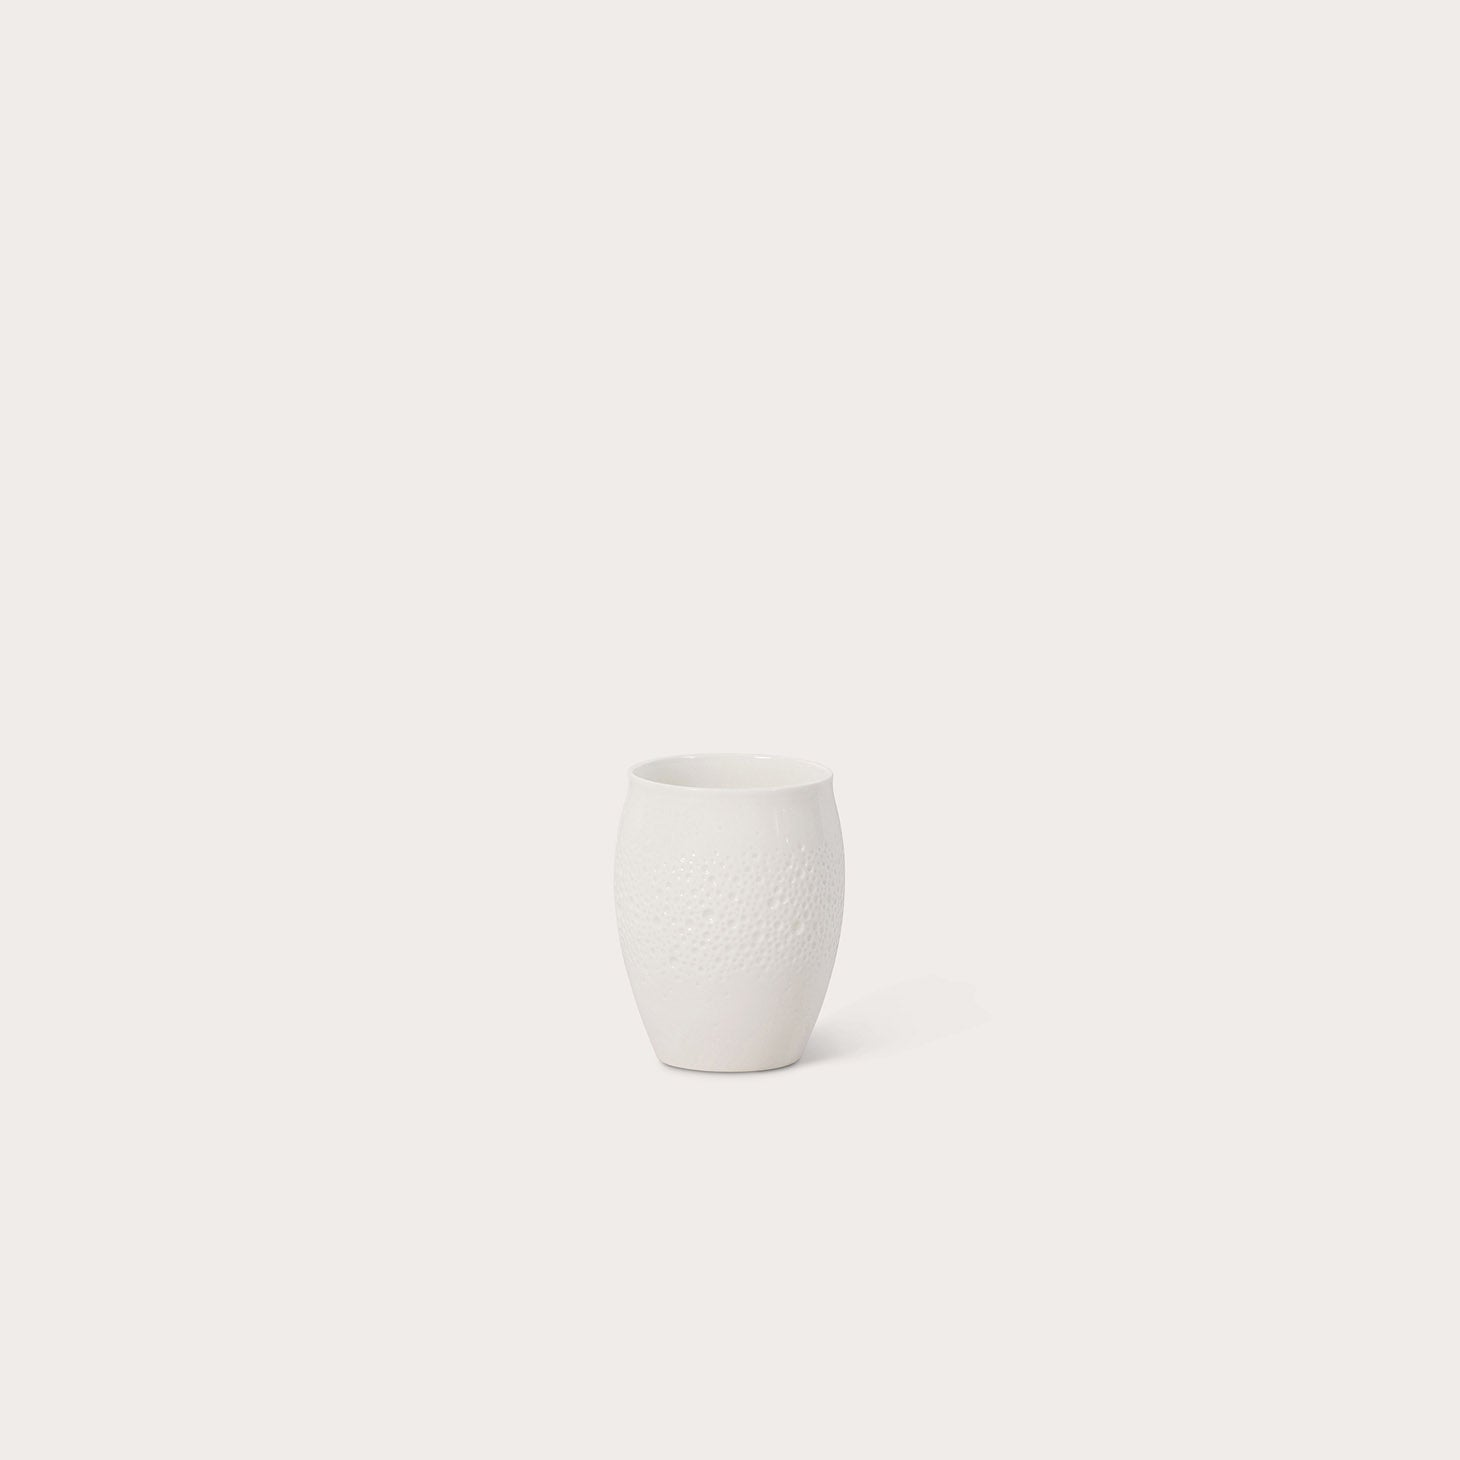 White Coral Beaker Accessories Ted Muehling Designer Furniture Sku: 542-100-10094